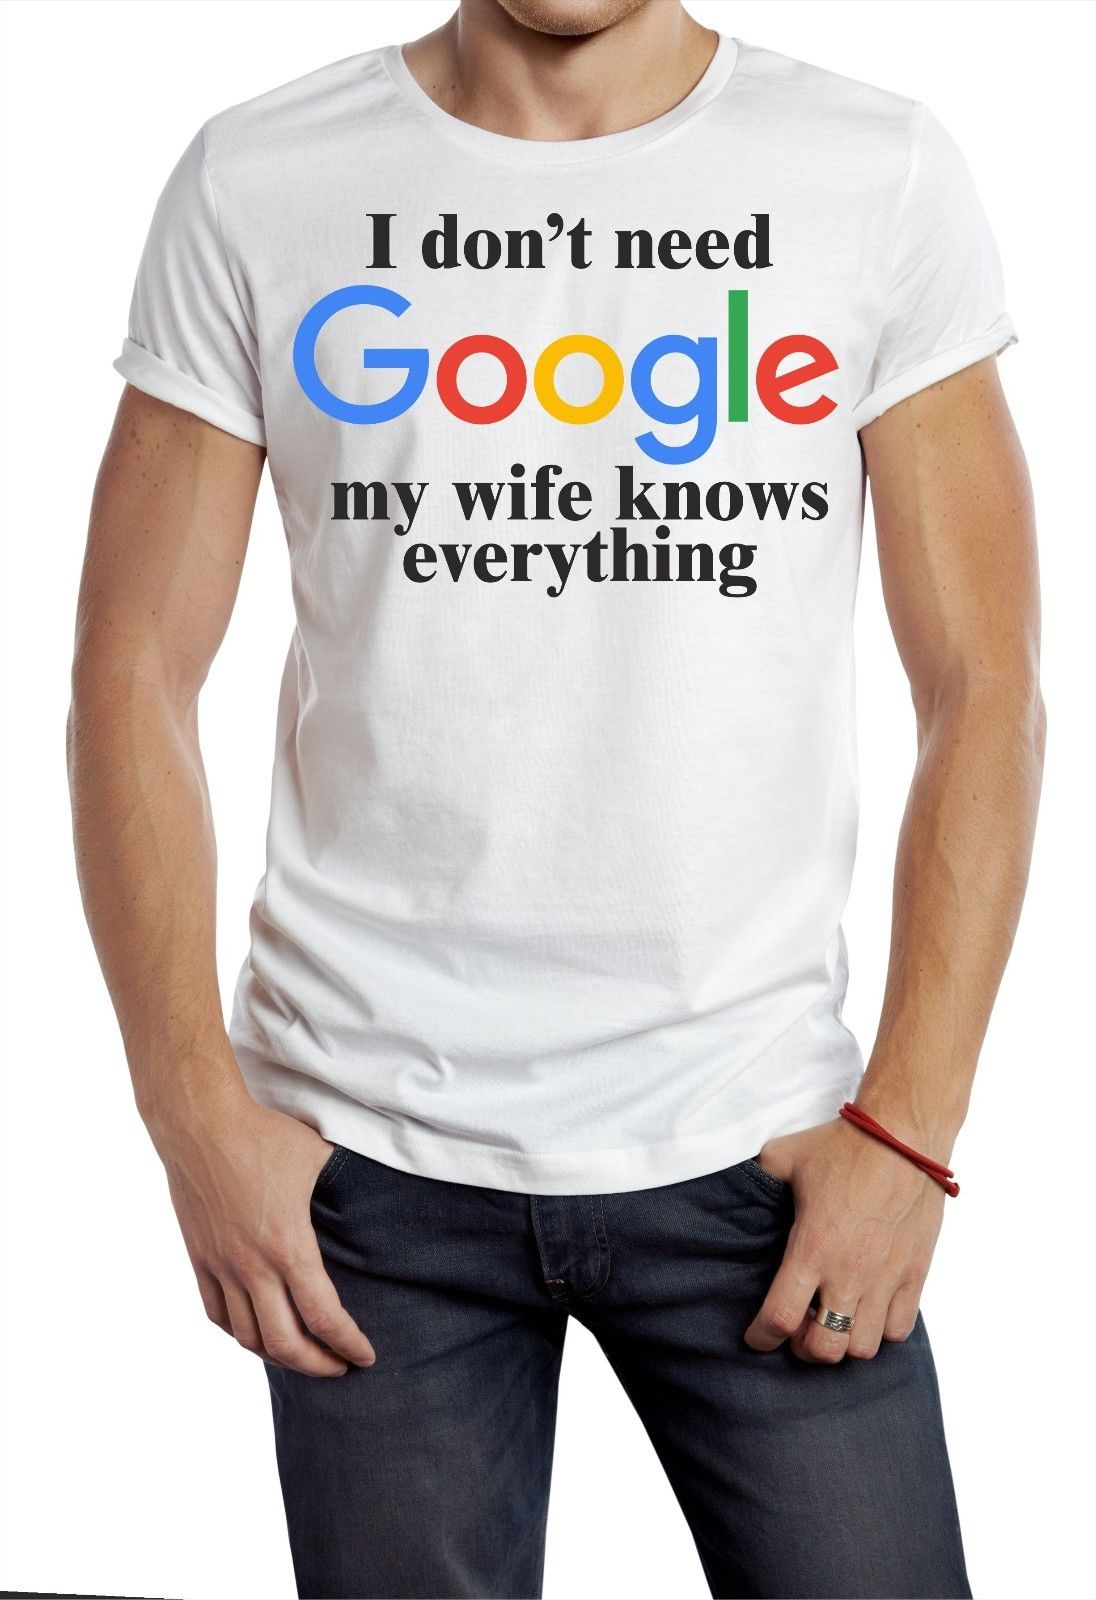 I DON'T NEED GOOGLE T SHIRT MY WIFE KNOWS EVERYTHING FUNNY GEEK NERD SHELDON W